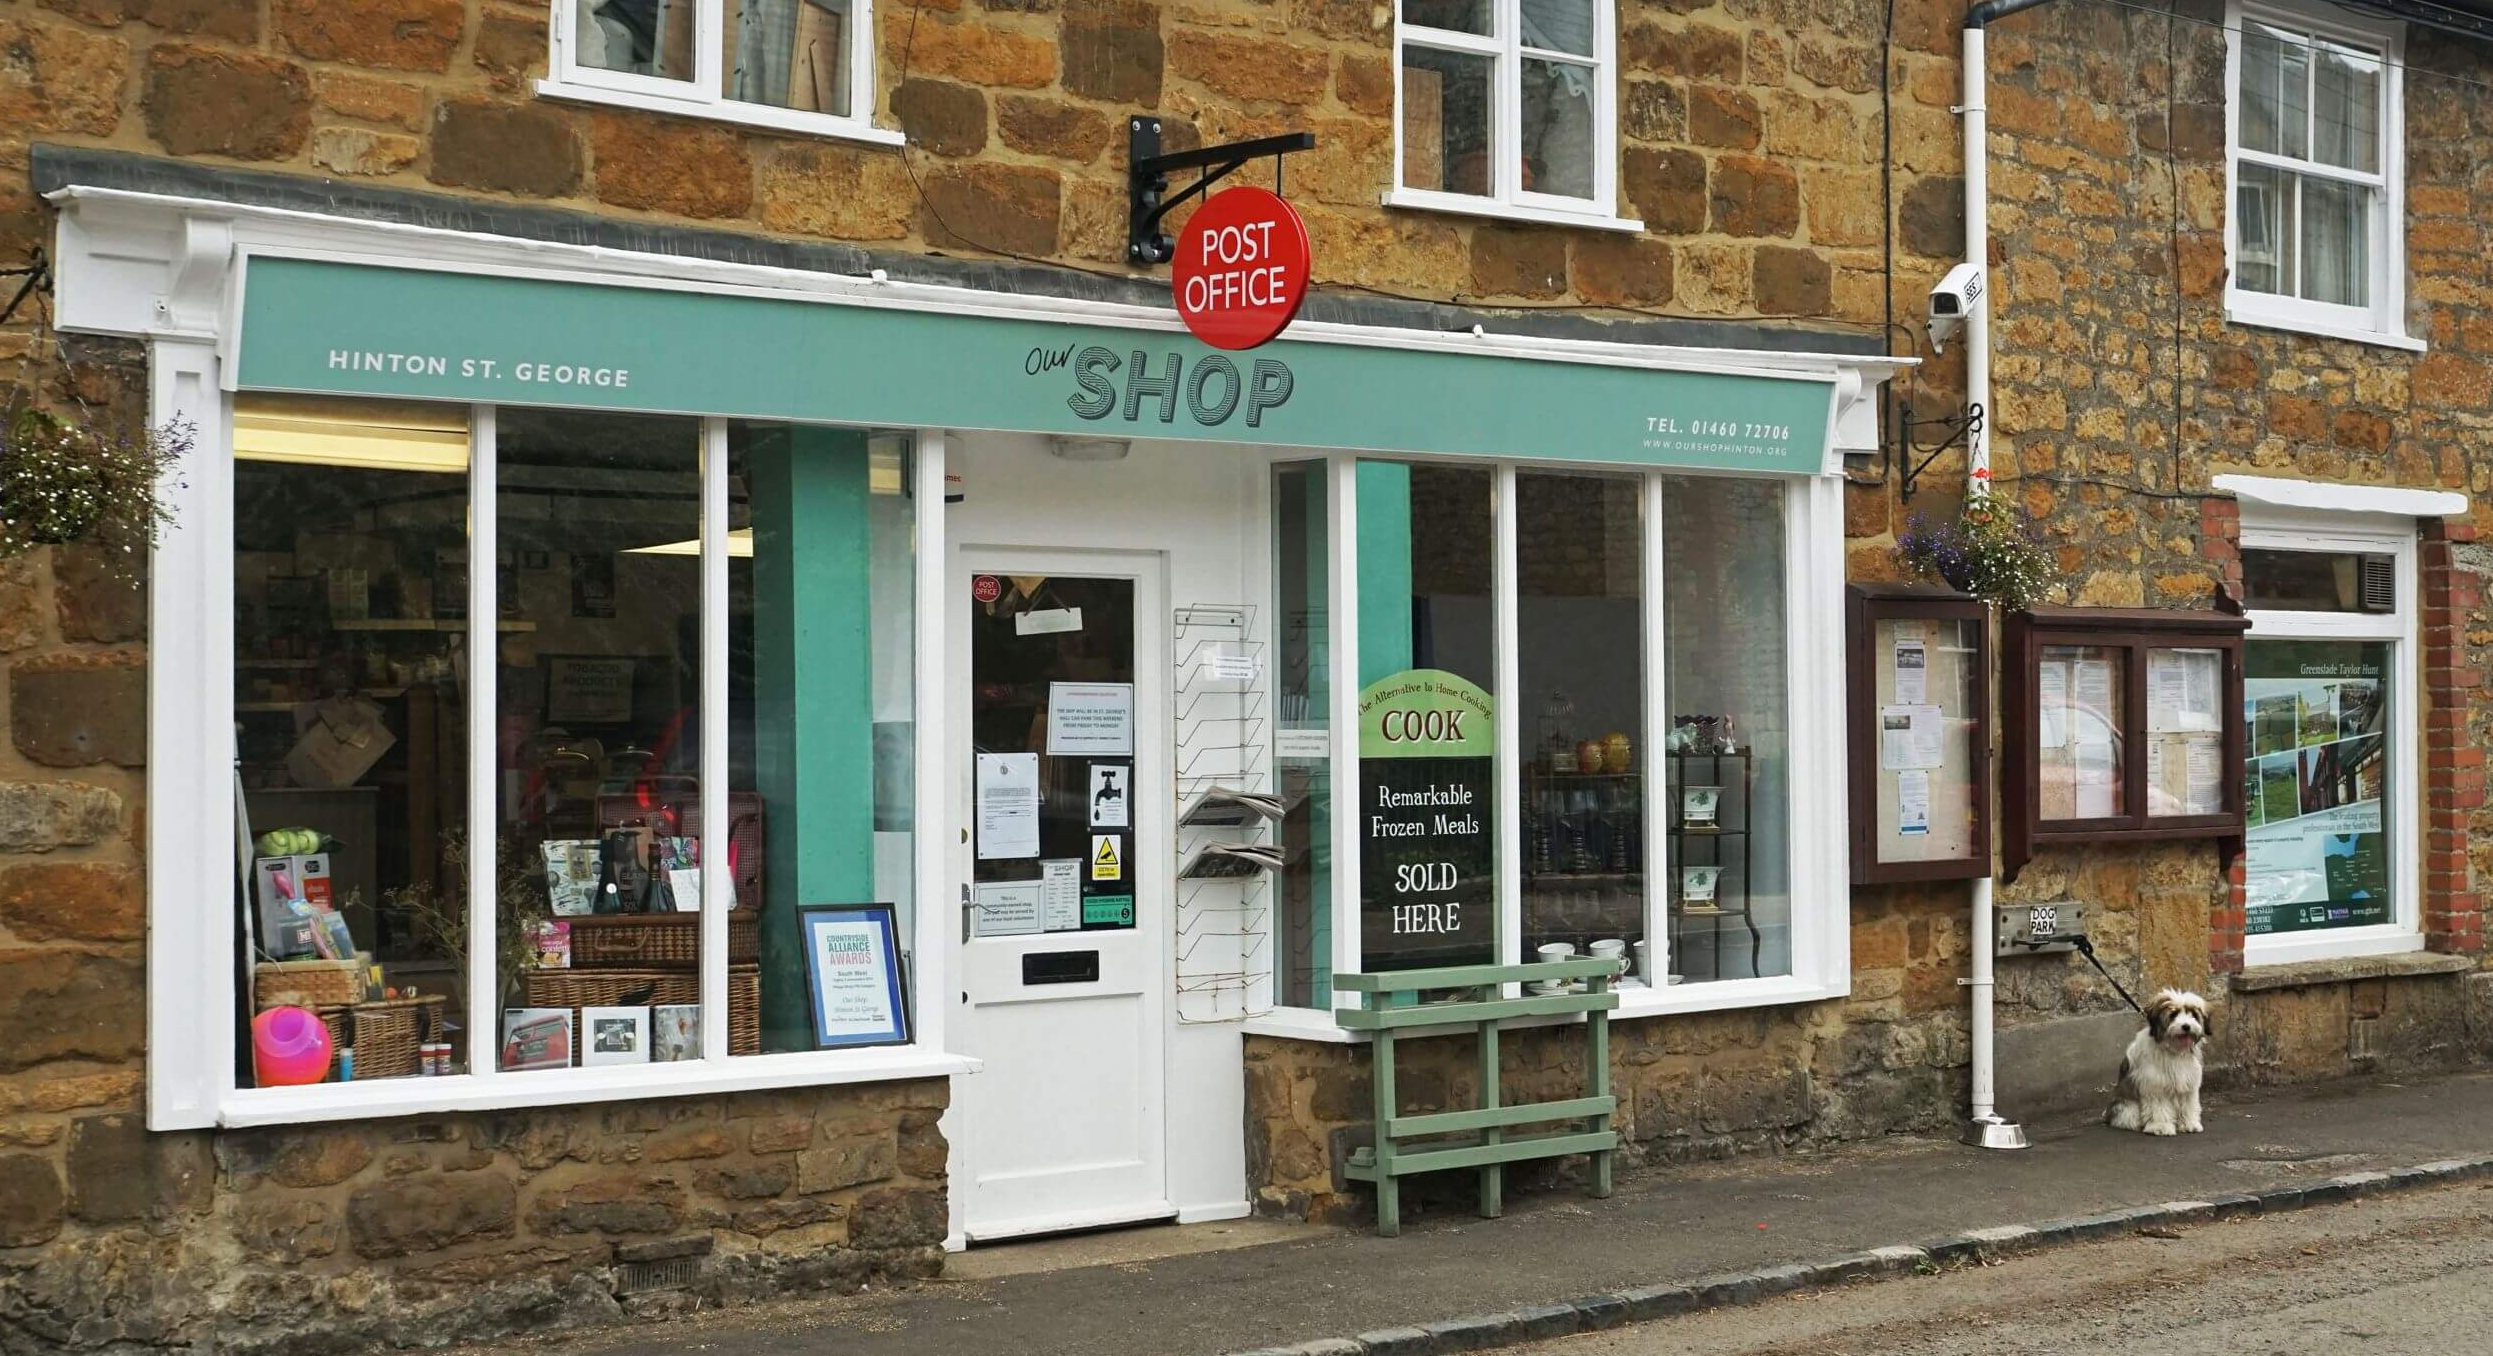 Our Shop & Post Office main image